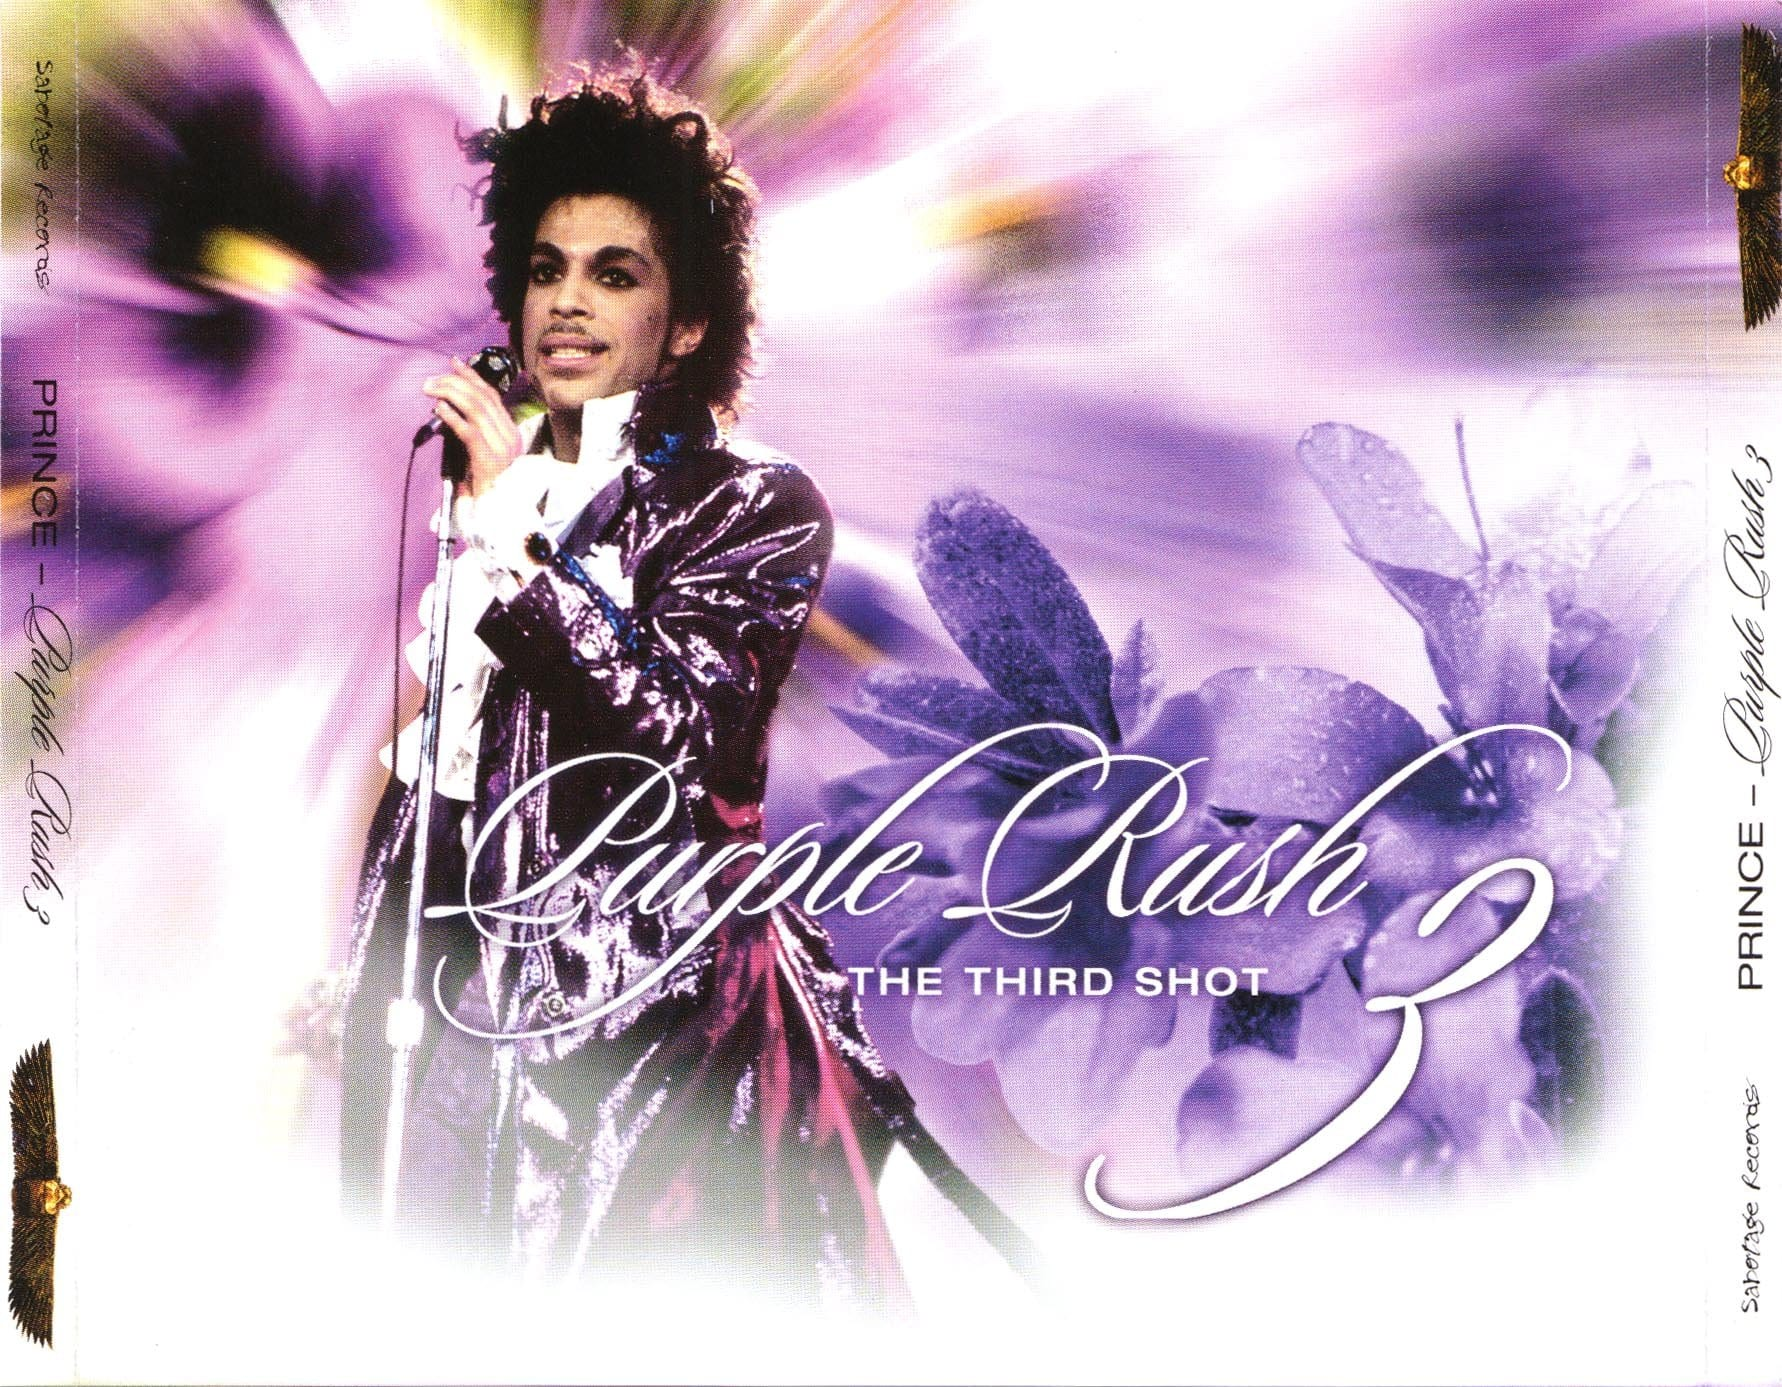 Prince - Purple Rush 4: The Final Seduction (Rehearsals & Performances from the Purple Rain Era 1985) 4 CD SET 9